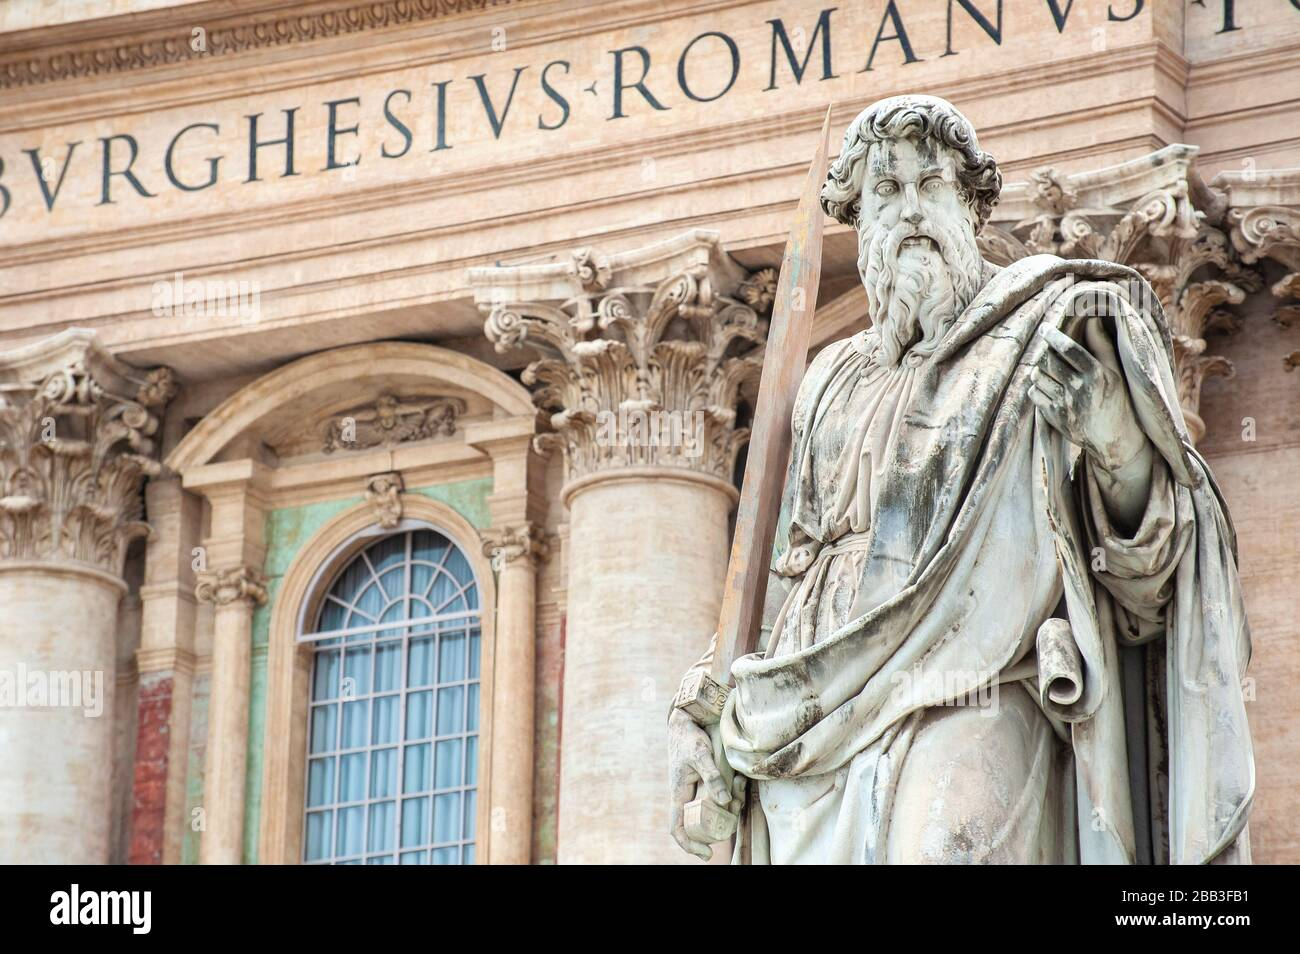 Statue of St. Paul standing in front of St. Peter's Basilica, St. Peter's Square, Vatican City, Rome Stock Photo